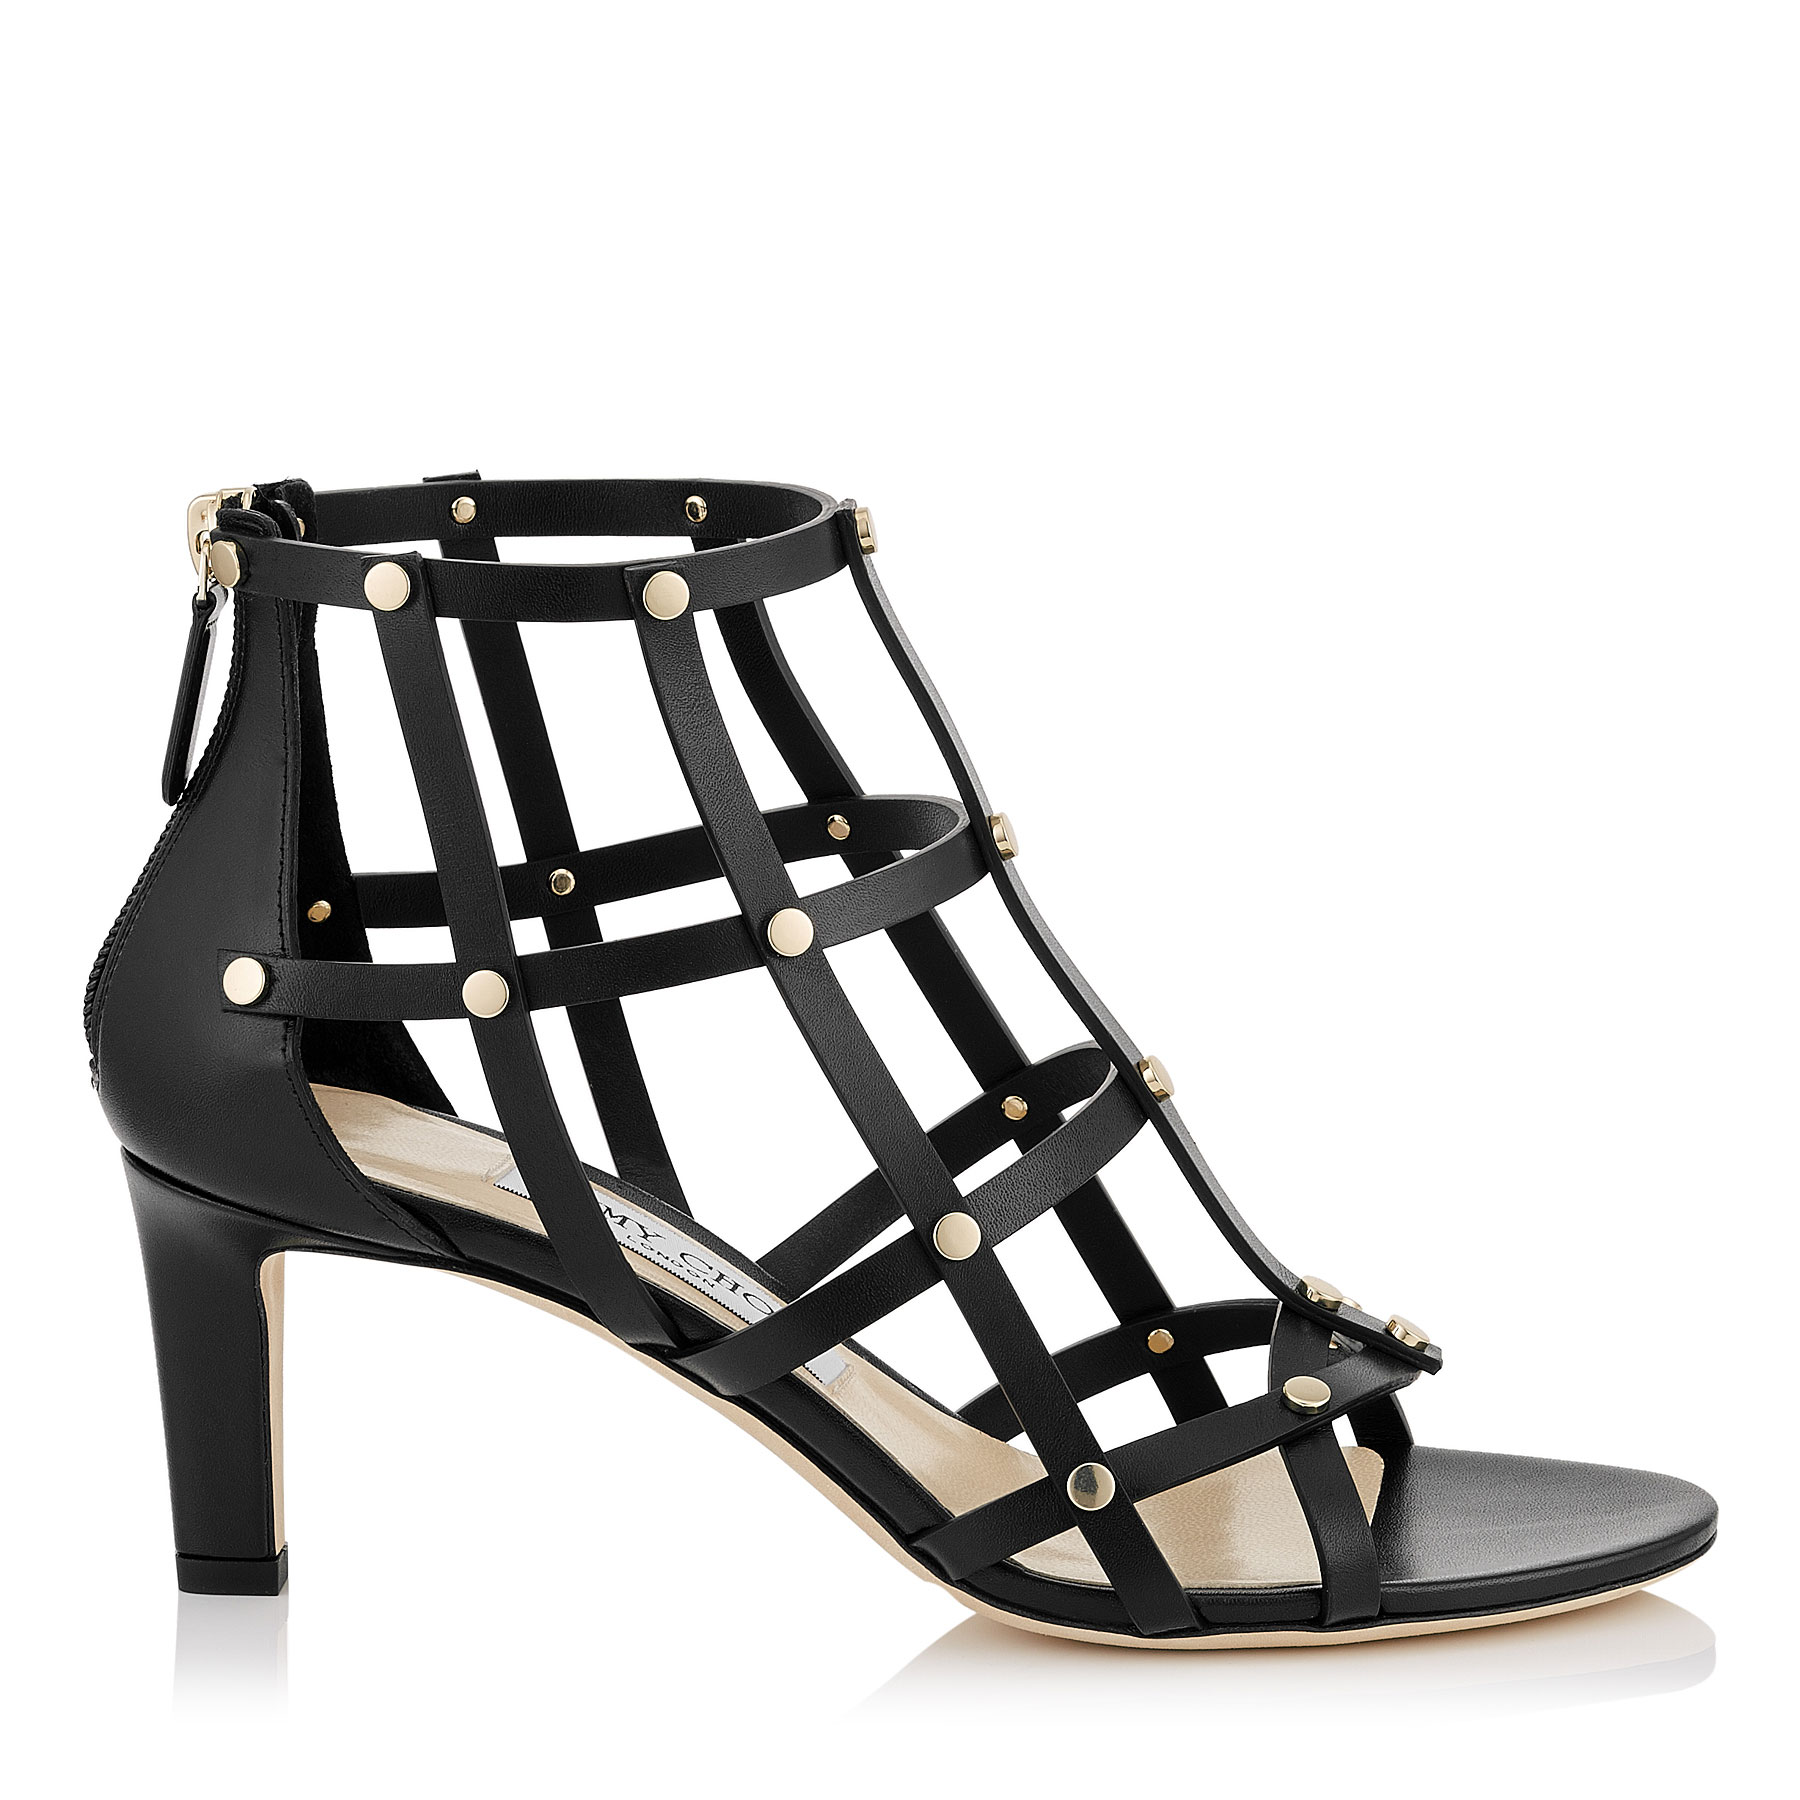 TINA 65 Black Calf Leather Sandals with Light Gold Studs by Jimmy Choo